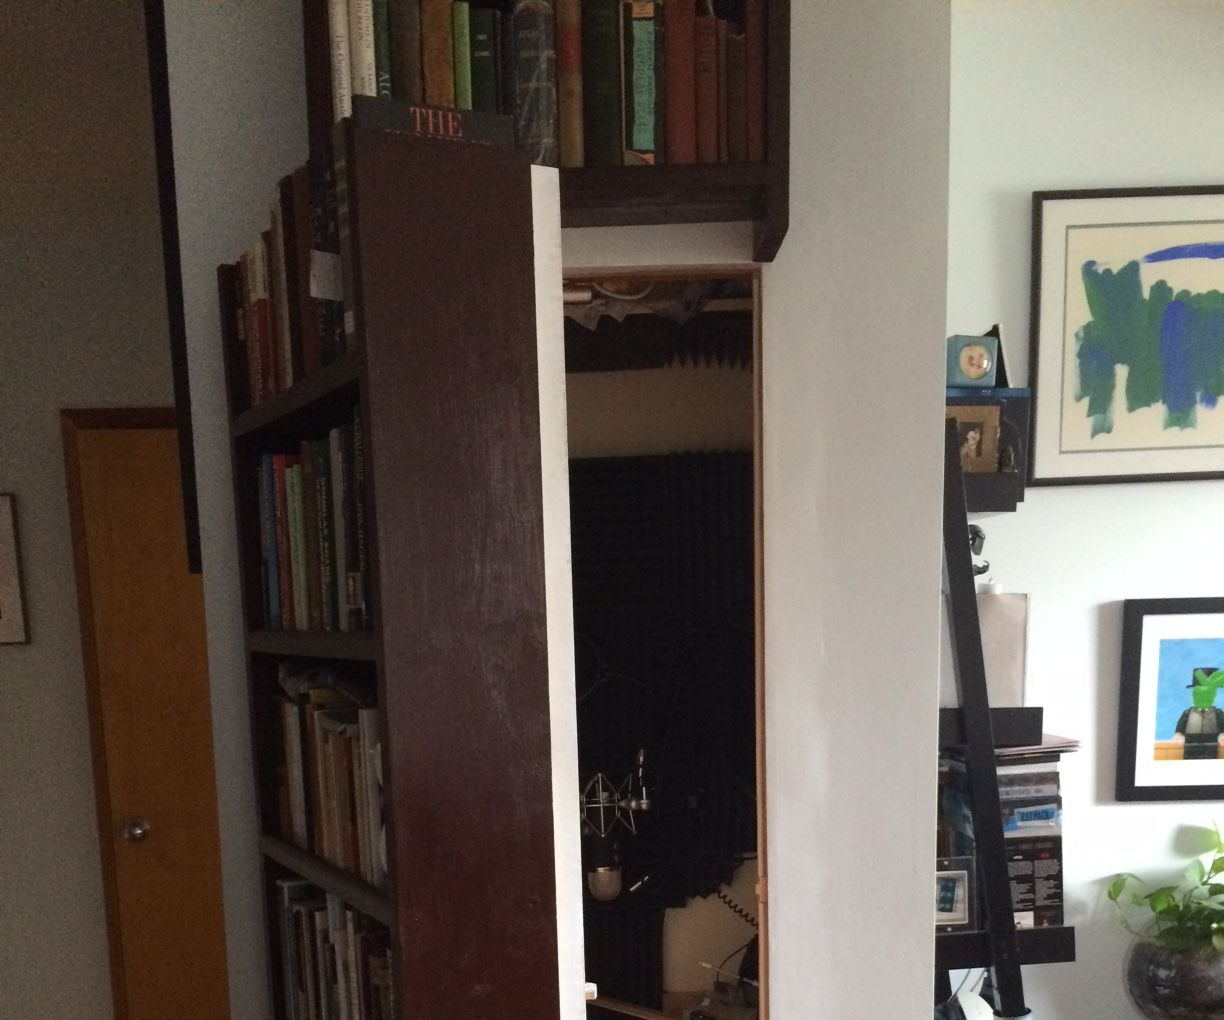 Super SIMPLE Secret Bookshelf Door & Book Unlock Mechanism